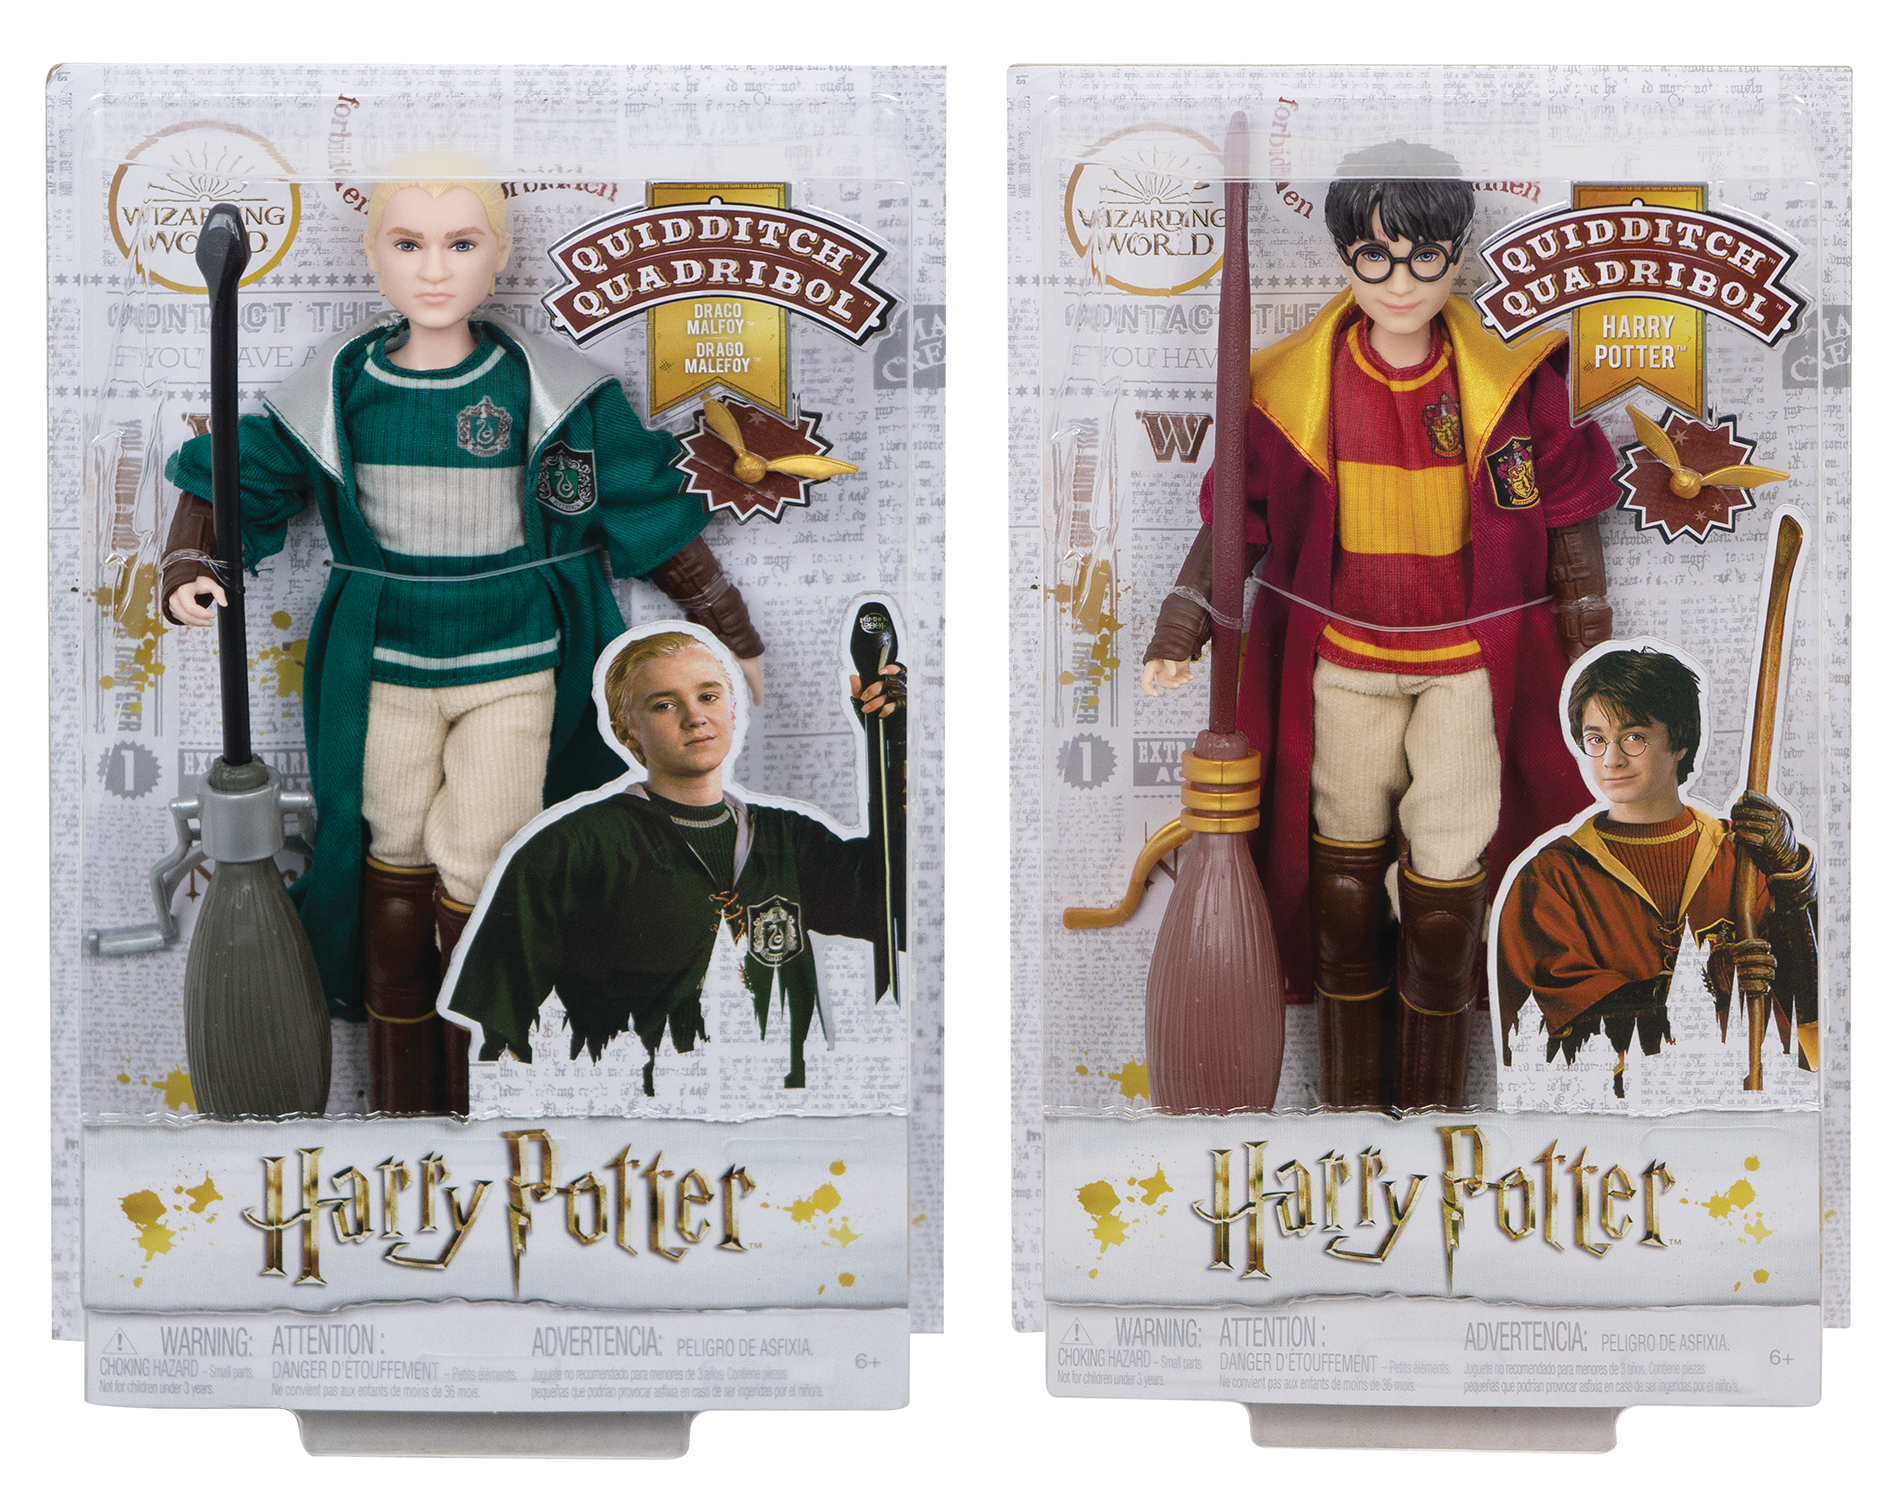 HARRY POTTER 7IN SCALE QUIDDITCH DOLL ASST